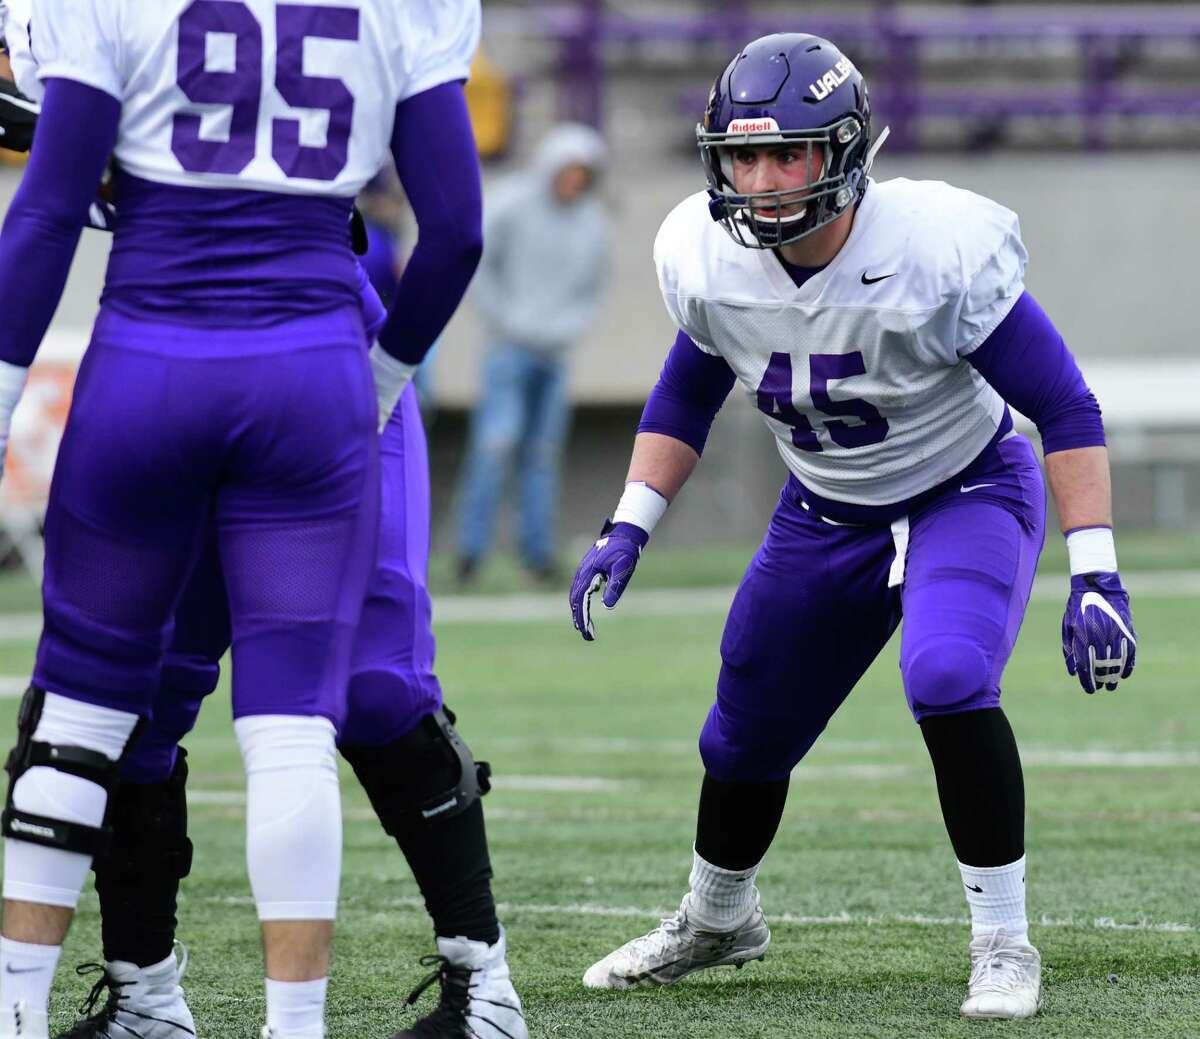 University at Albany linebacker Levi Metheny, right, is seen during spring football practice at Casey Stadium on Tuesday, April 2, 2019, in Albany, N.Y. He led the Danes in tackles in 2019 with 120. (Lori Van Buren/Times Union)